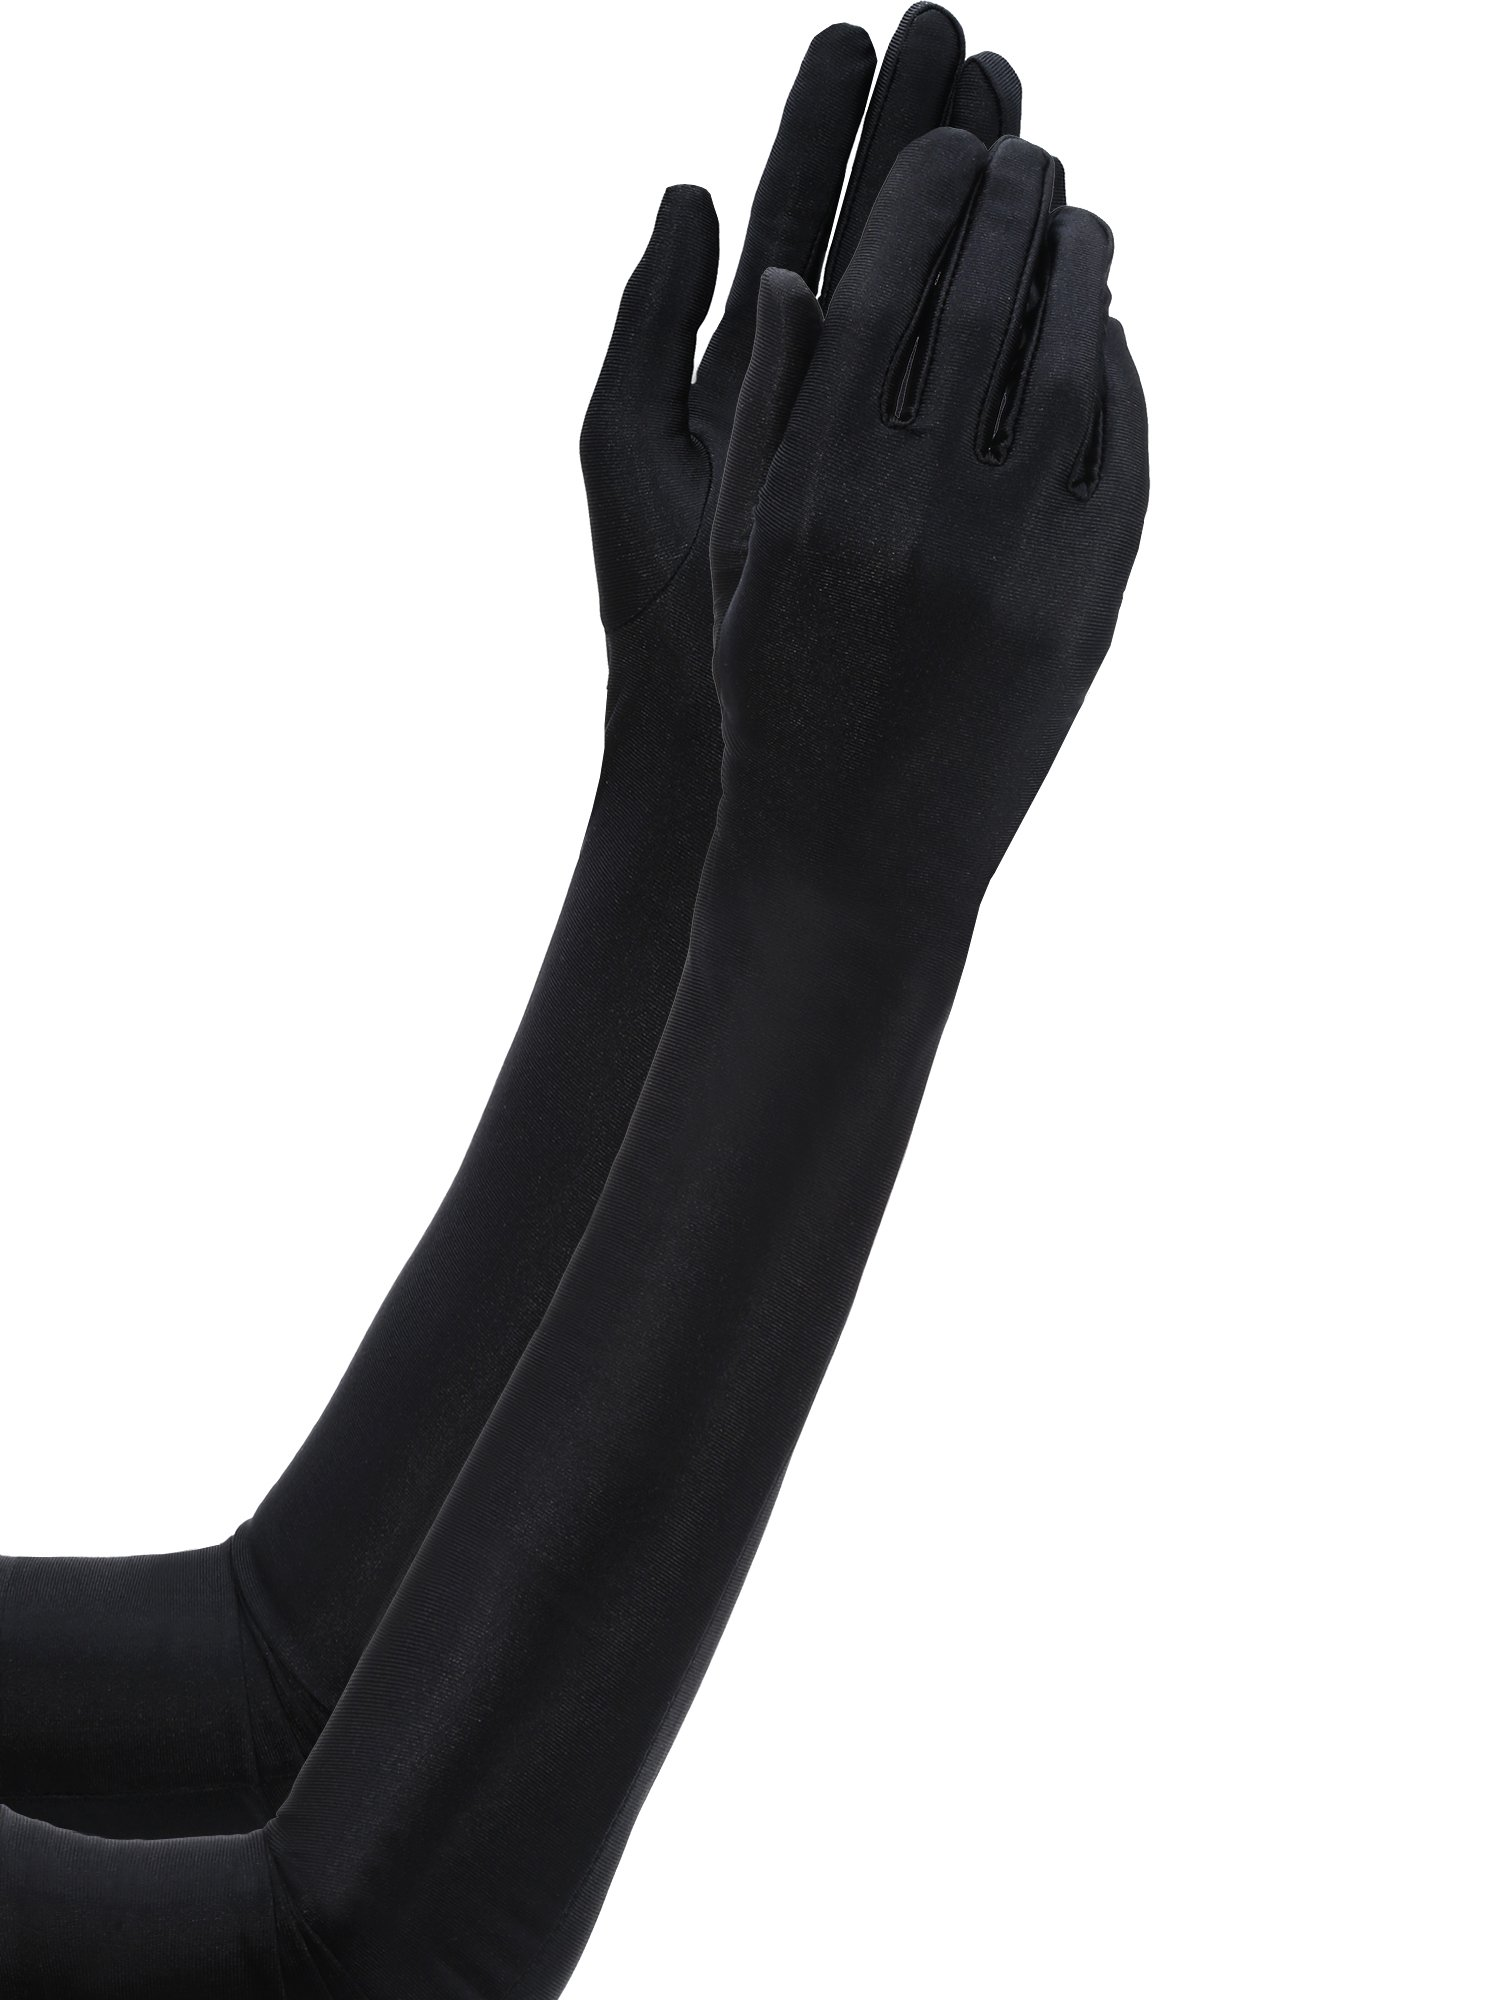 Jetec 3 Pair 1920s Opera Gloves Classic Long Satin Gloves Elbow Length 22 Inch Gloves Adult Size for Women and Girls (Black) by Jetec (Image #2)